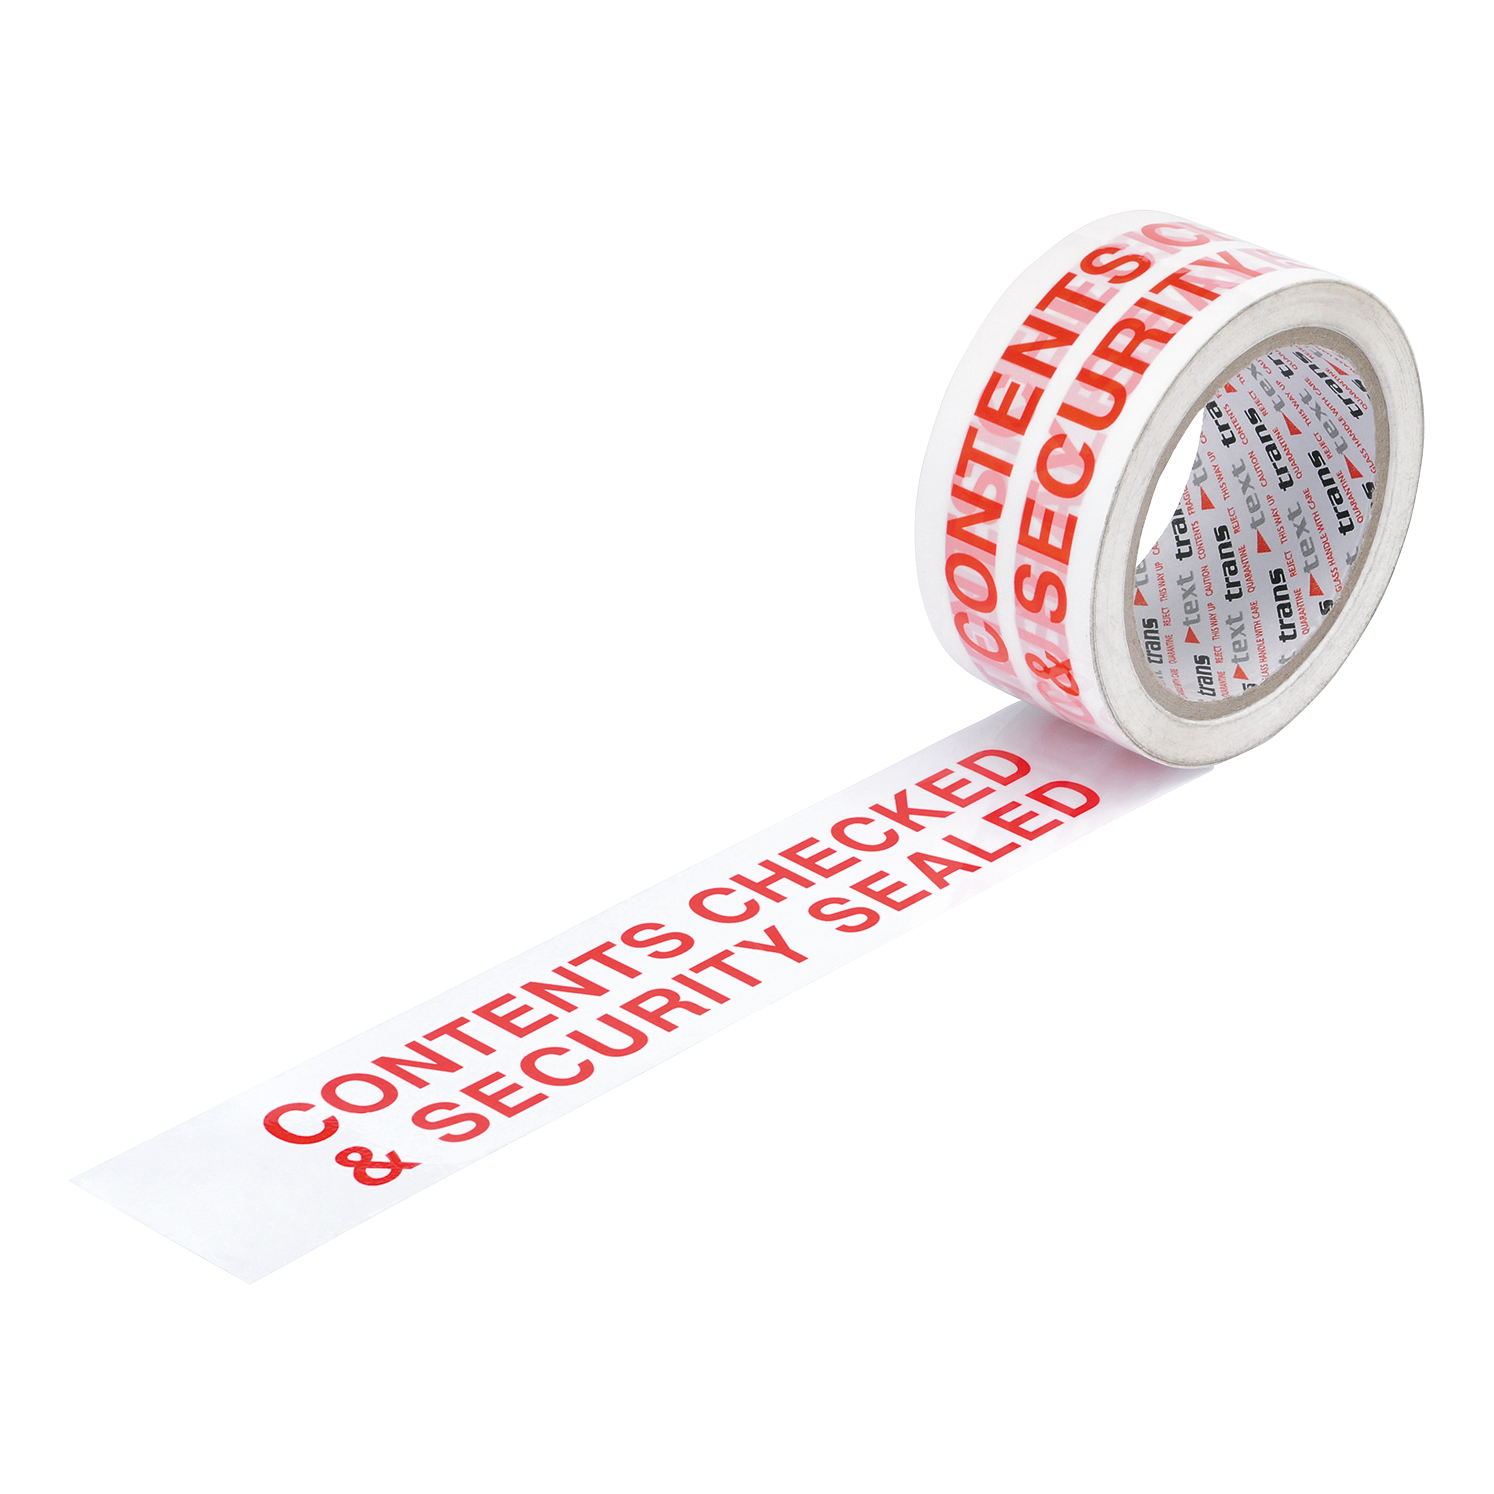 5 Star Office Printed Tape Contents Checked and Sealed Polypropylene 48mmx66m Red Text on White Pack 6